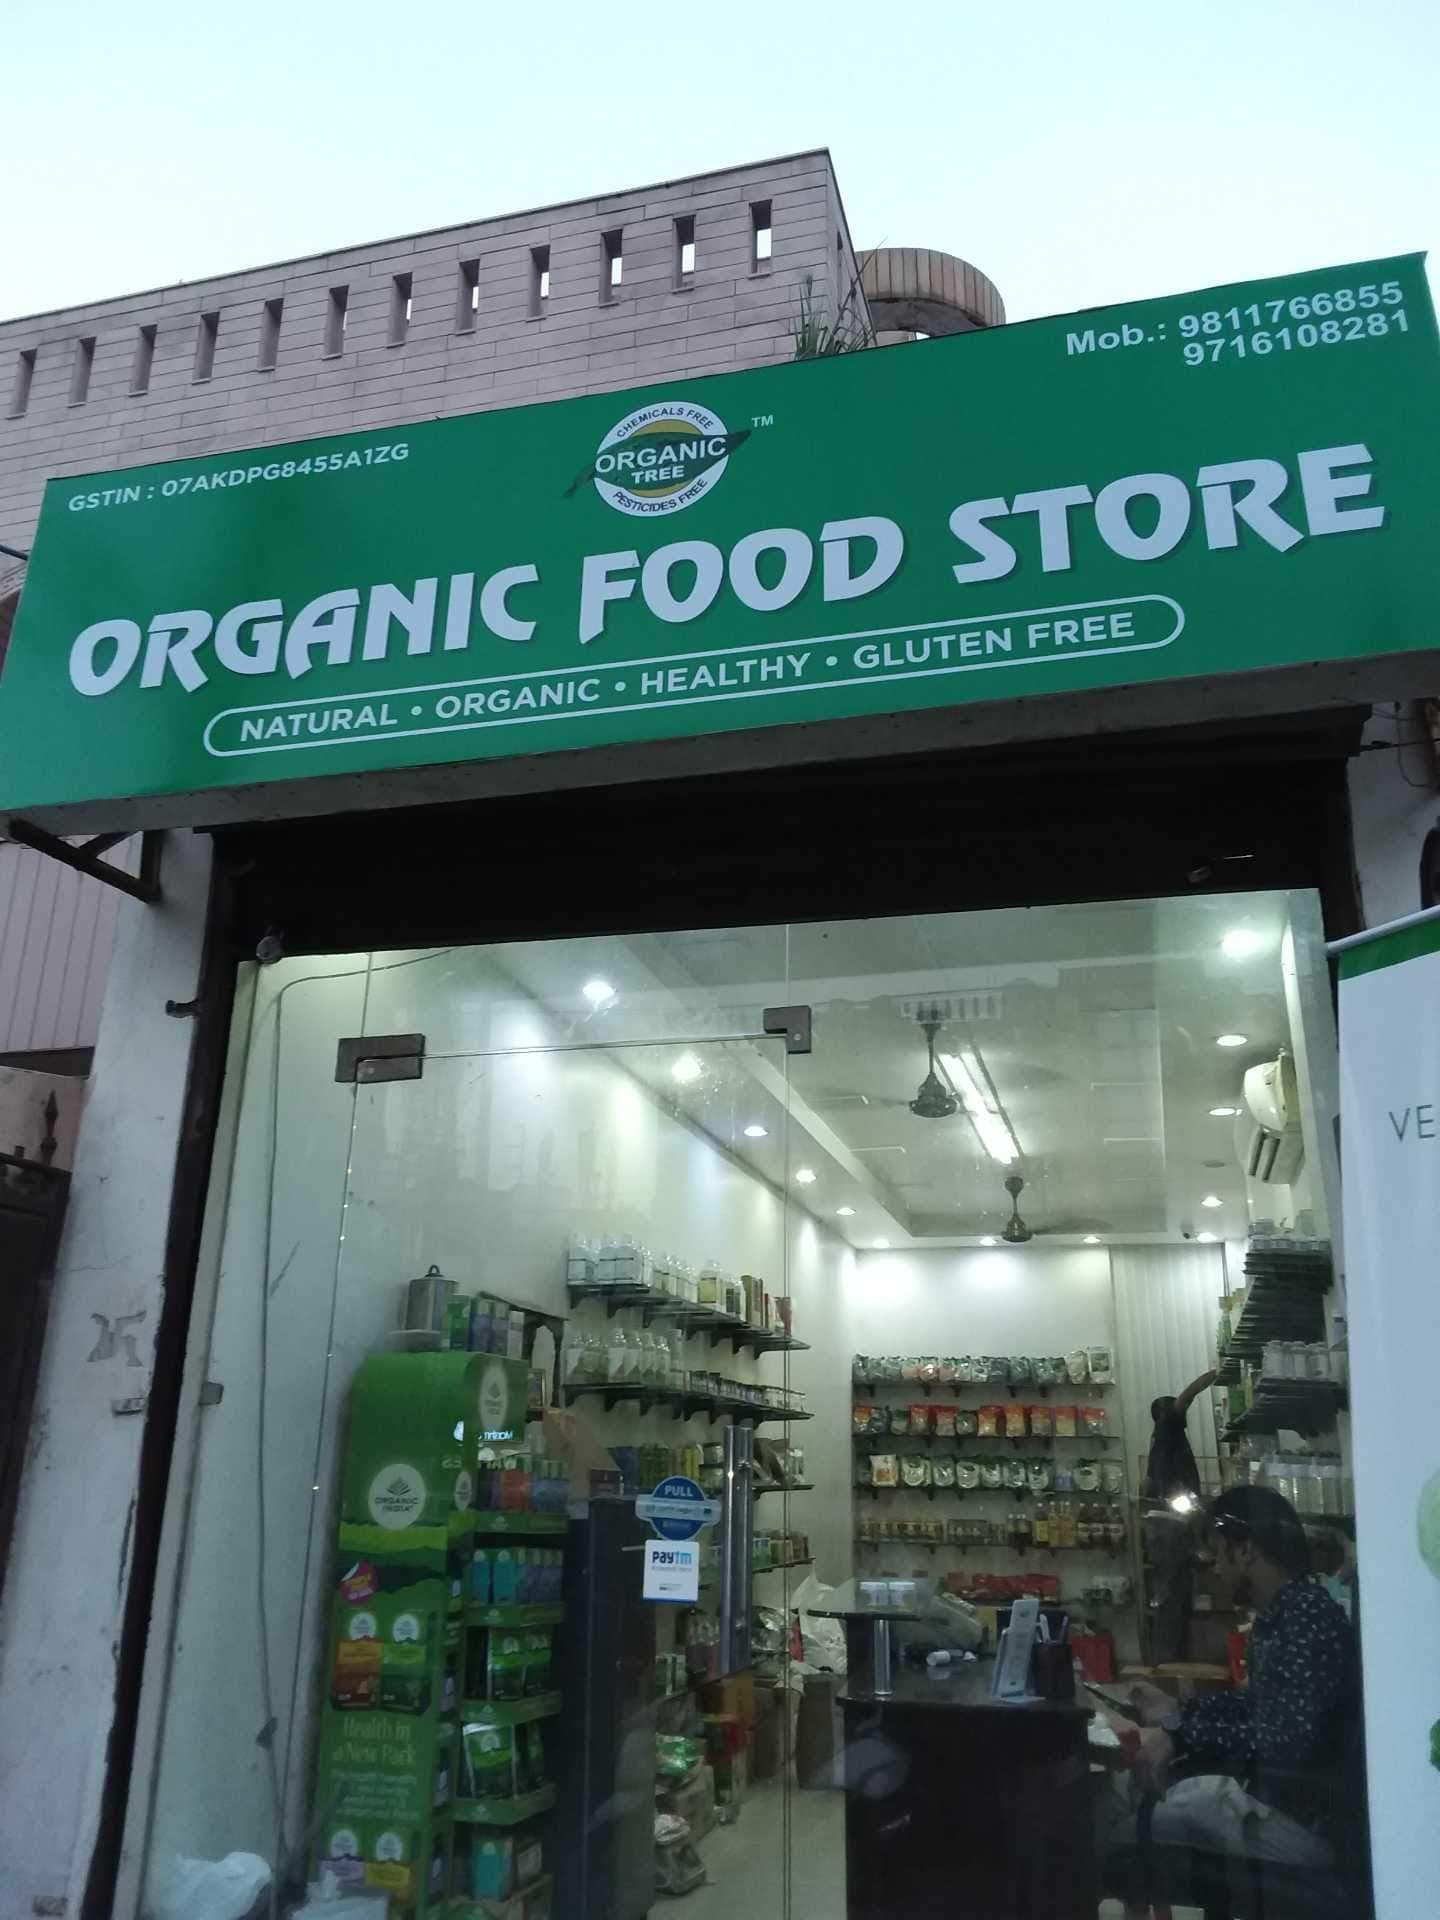 Top Sri Sri Organics Food Grain Retailers In Rani Bagh Best Sri Sri Organics Food Grain Retailers Delhi Justdial